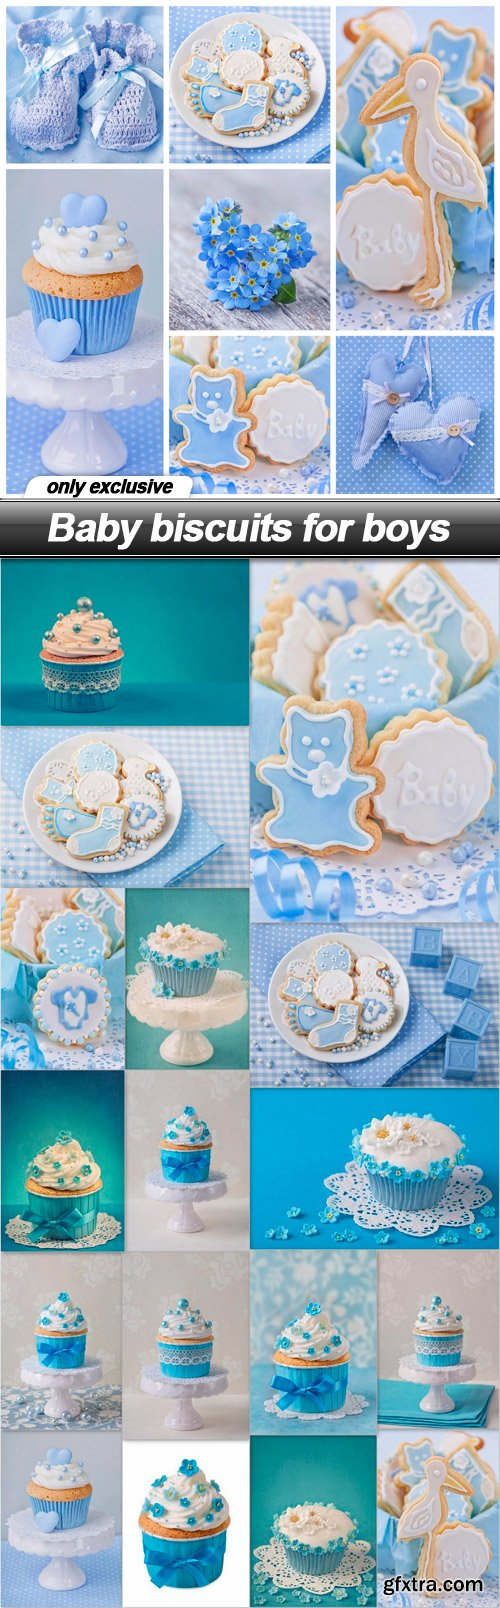 Baby biscuits for boys - 18 UHQ JPEG